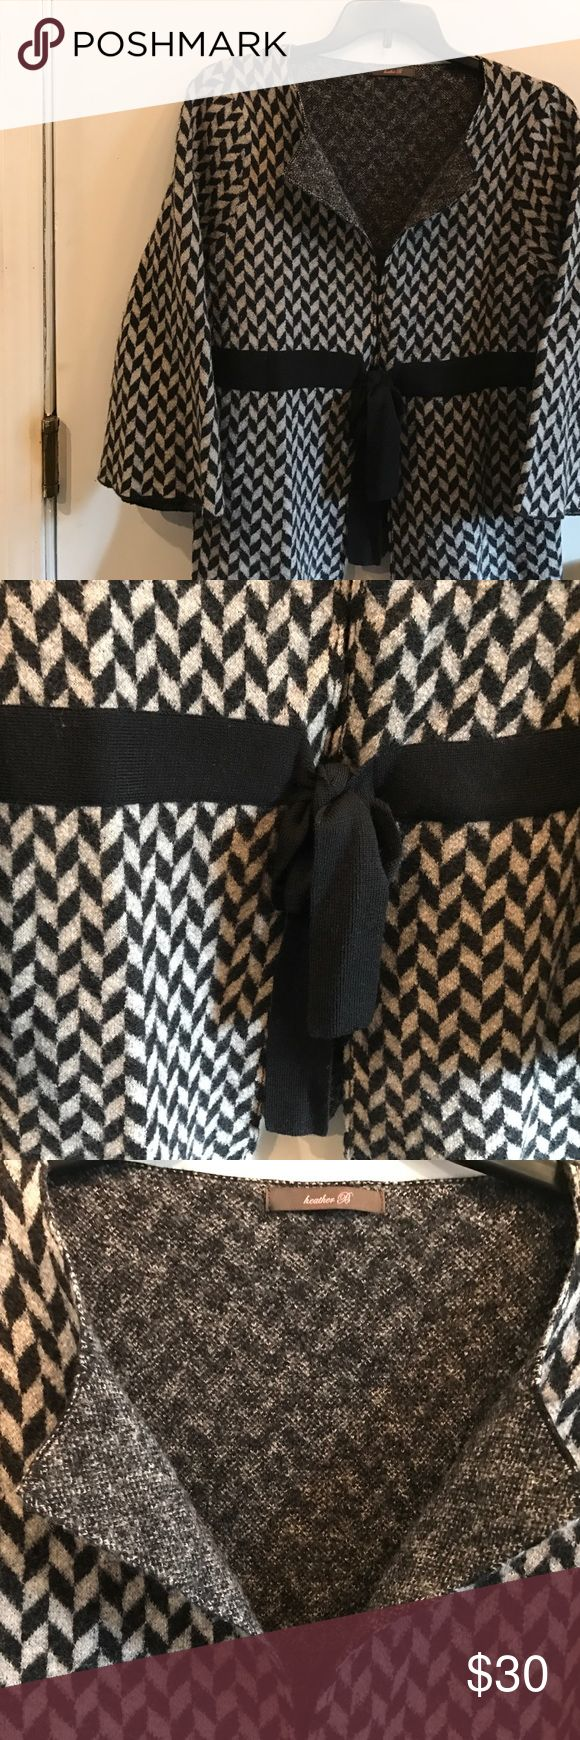 """Heather B wrap cardigan sweater Grey & black Sz XL Heather B wrap cardigan sweater! Grey & black chevron stripe. Sz XL bust 40"""". A simple way to look pulled together at work or luncheon! It could be a favorite addition to your wardrobe. Excellent Condition worn once. You will find this beautiful sweater to have no holes, stains, odors or pilling. Wool blend material. Check my closet for other similar items. No trades. heather b Sweaters Cardigans"""